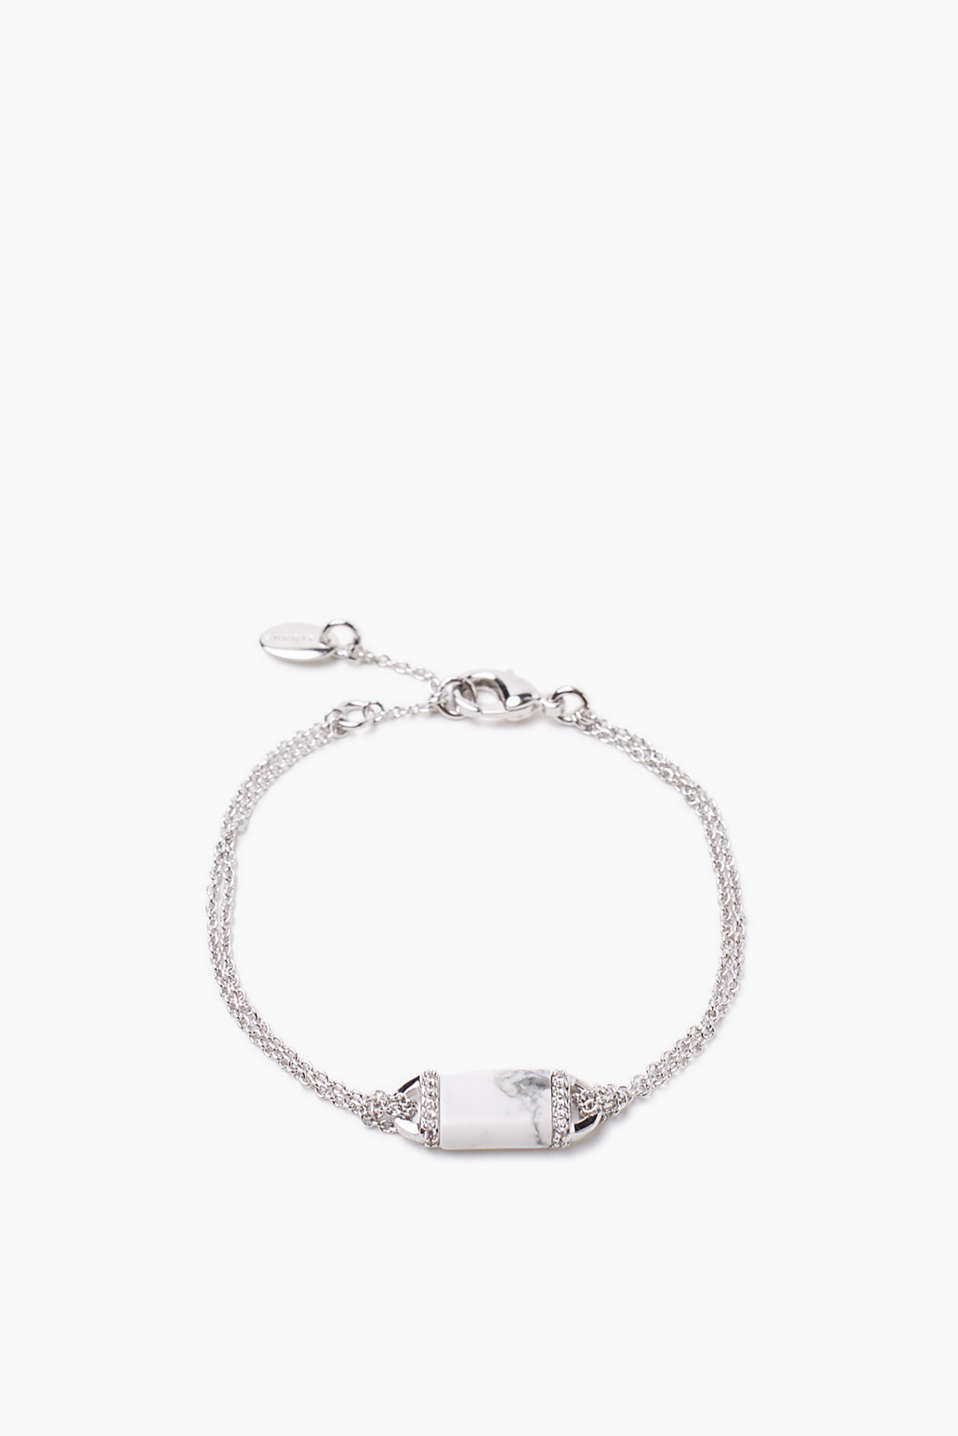 Fine link bracelet made of a high-quality metal alloy with a trendy, marble-effect charm